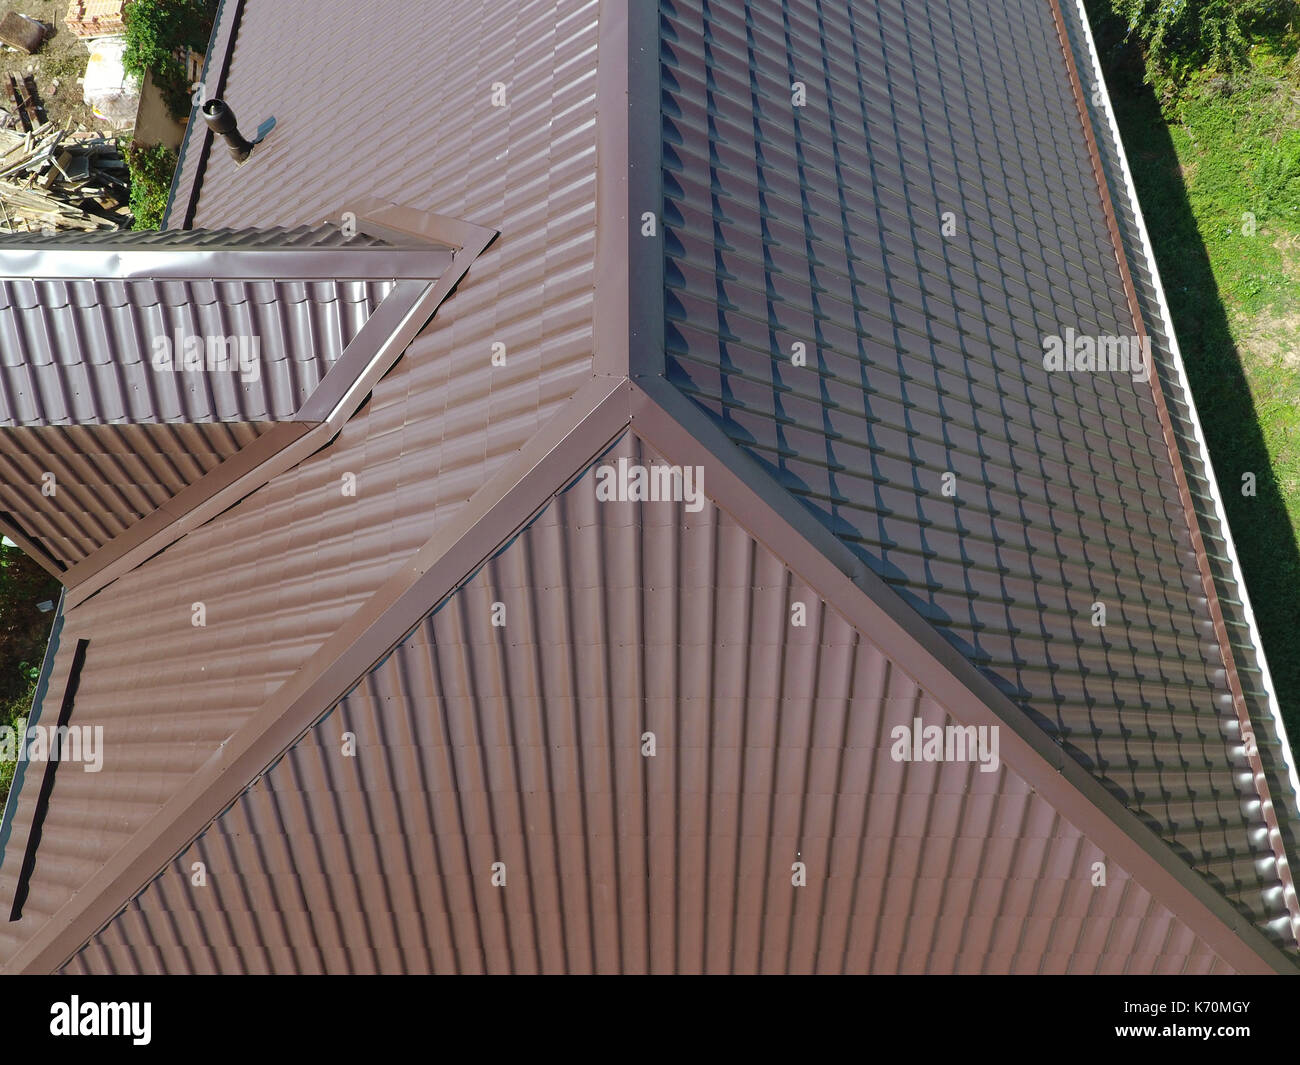 The Roof Of Corrugated Sheet Roofing Of Metal Profile Wavy Shape A Stock Photo Alamy